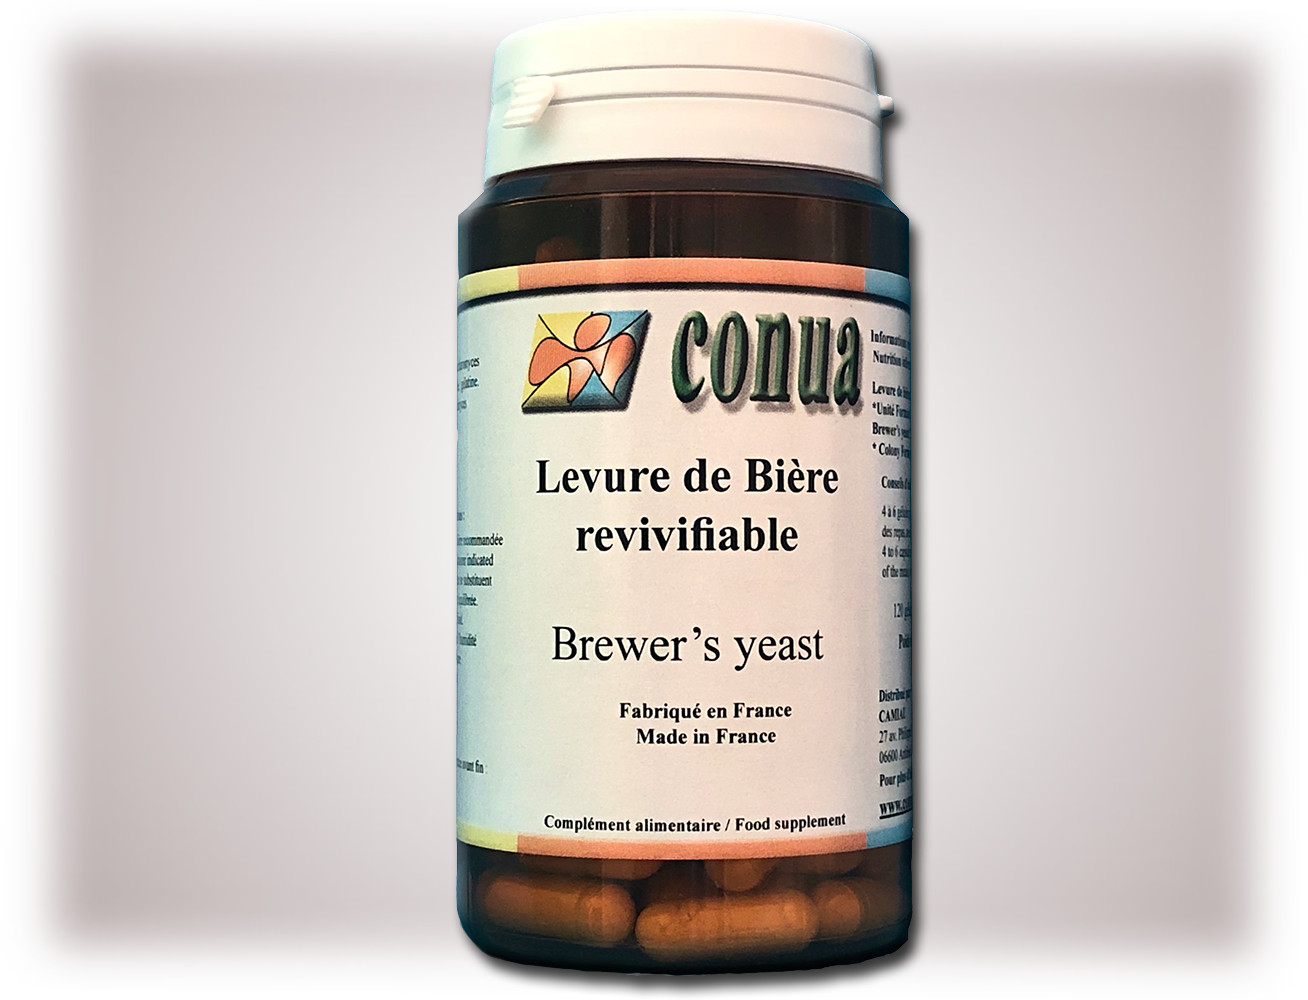 Buy Live beer yeast revivifiable 120 powder capsules 19 billion CFU